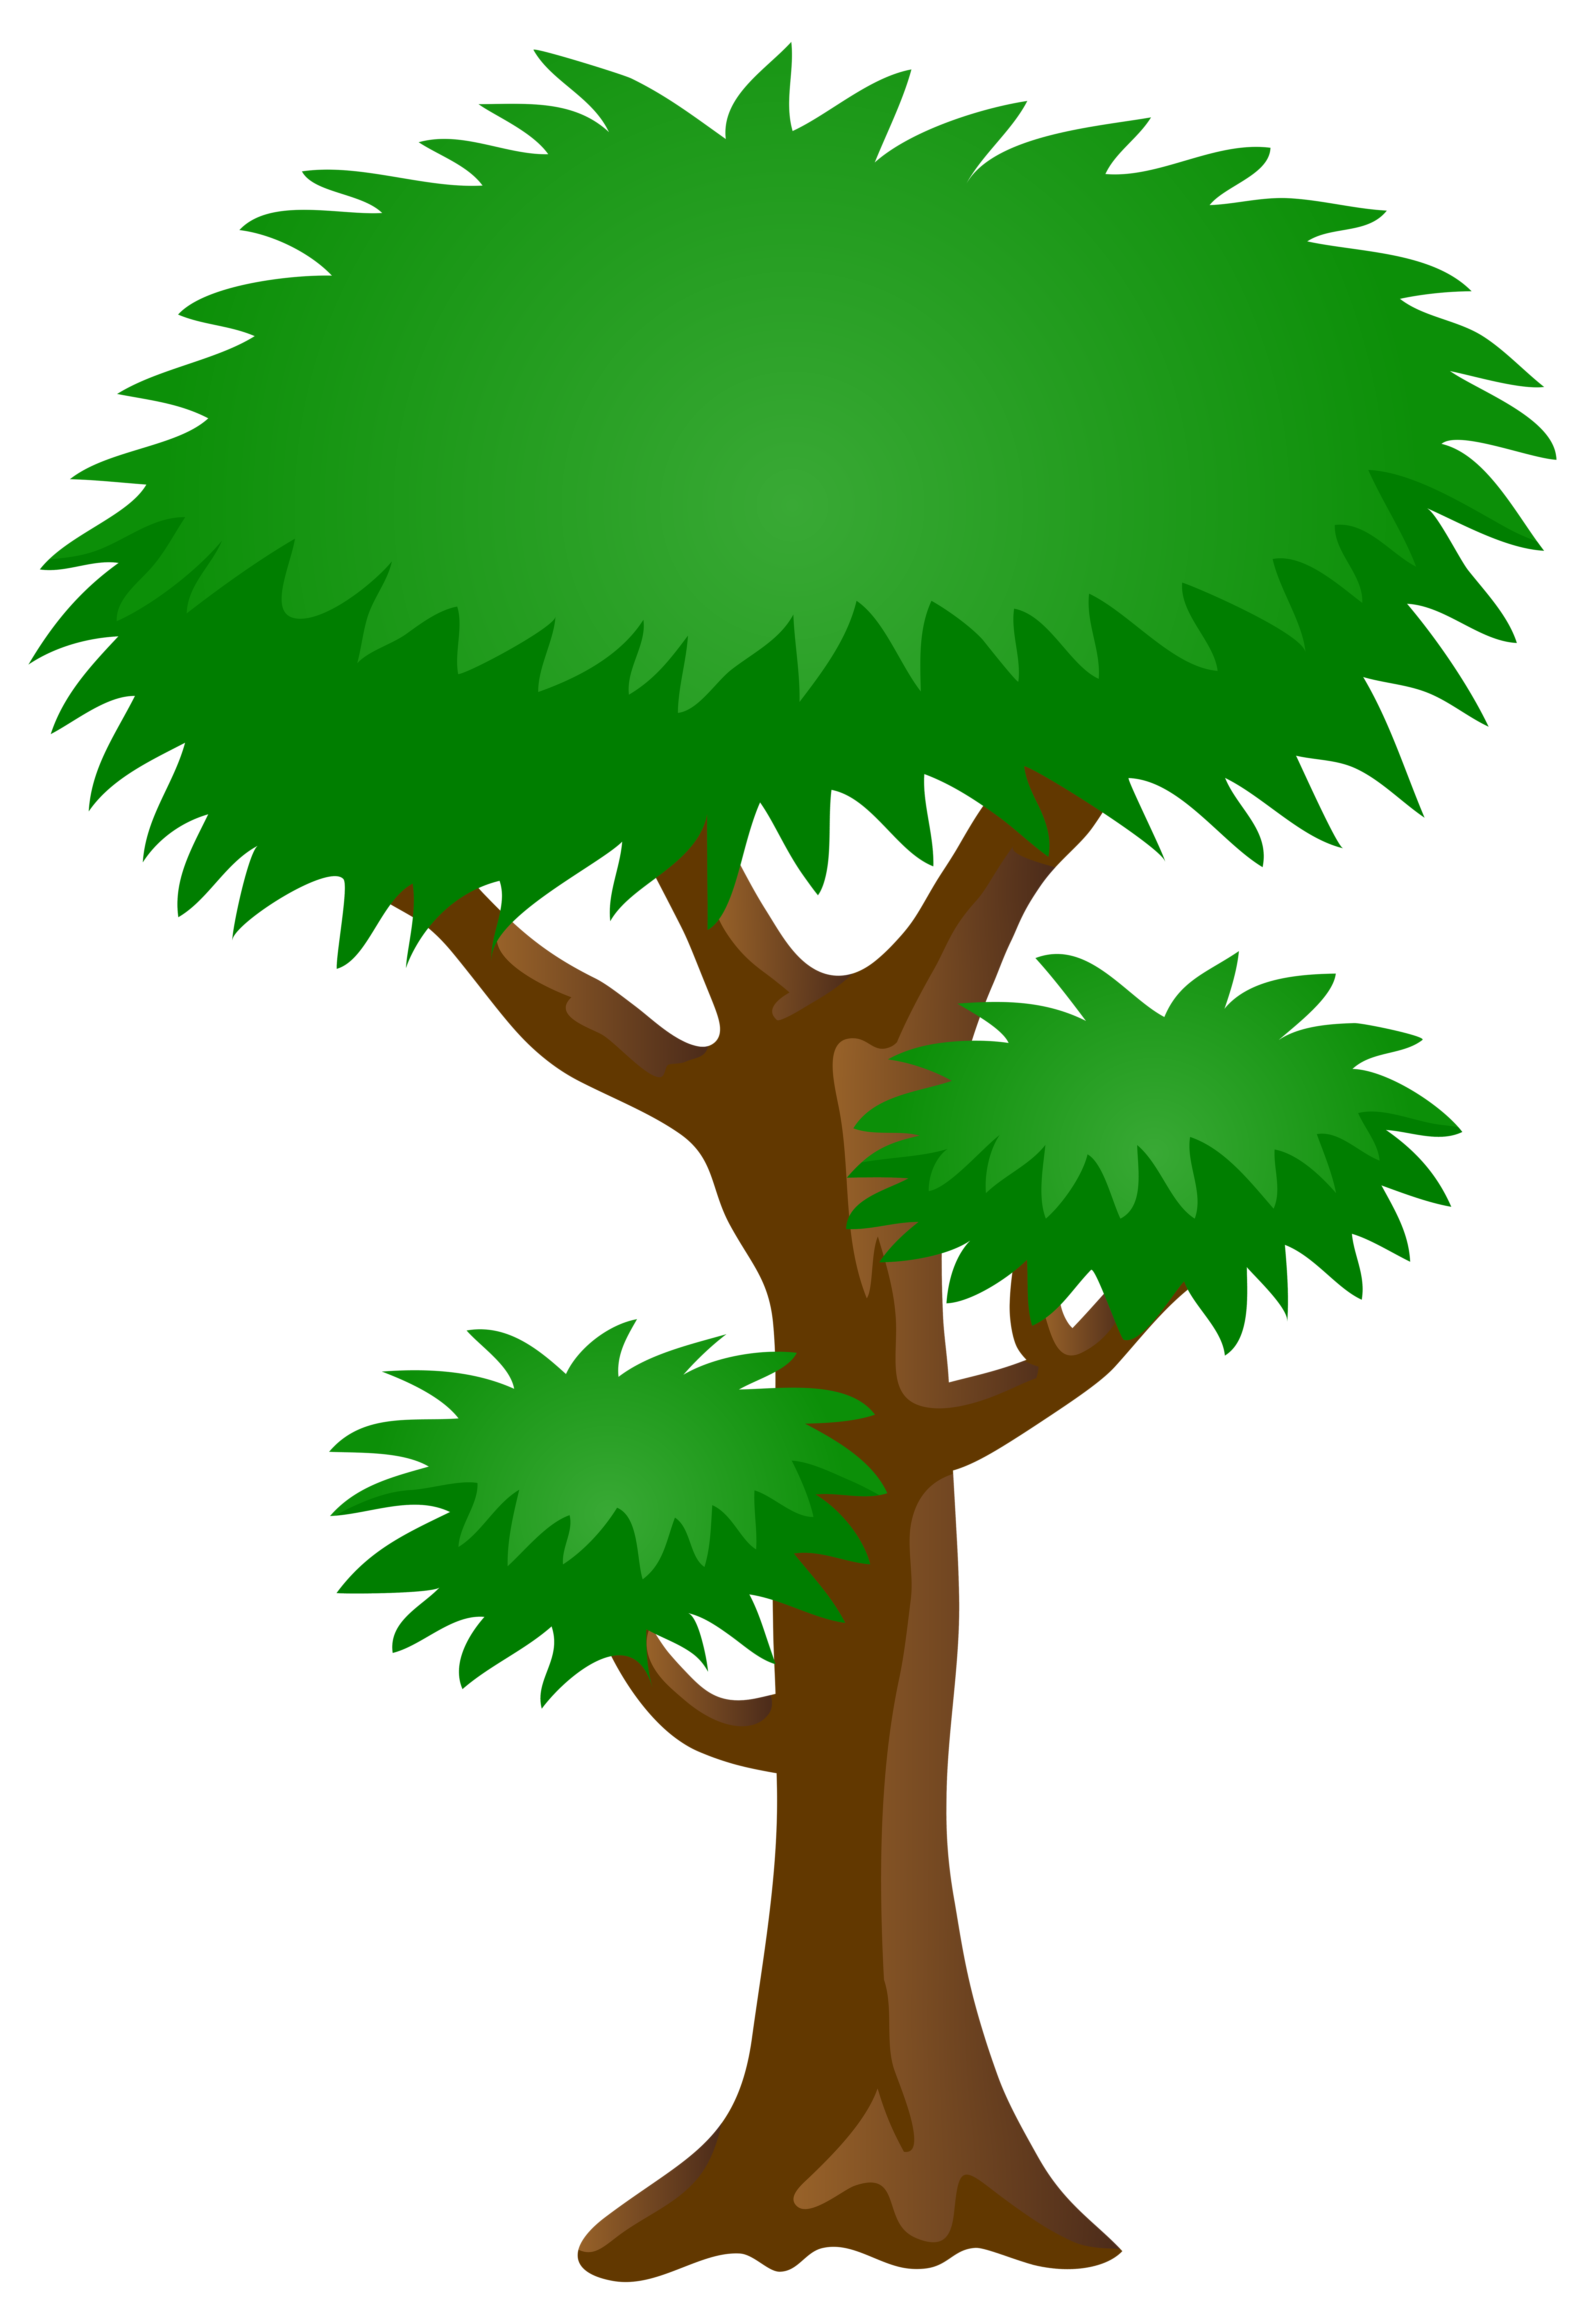 Clipart trees romantic. Green tree png clip